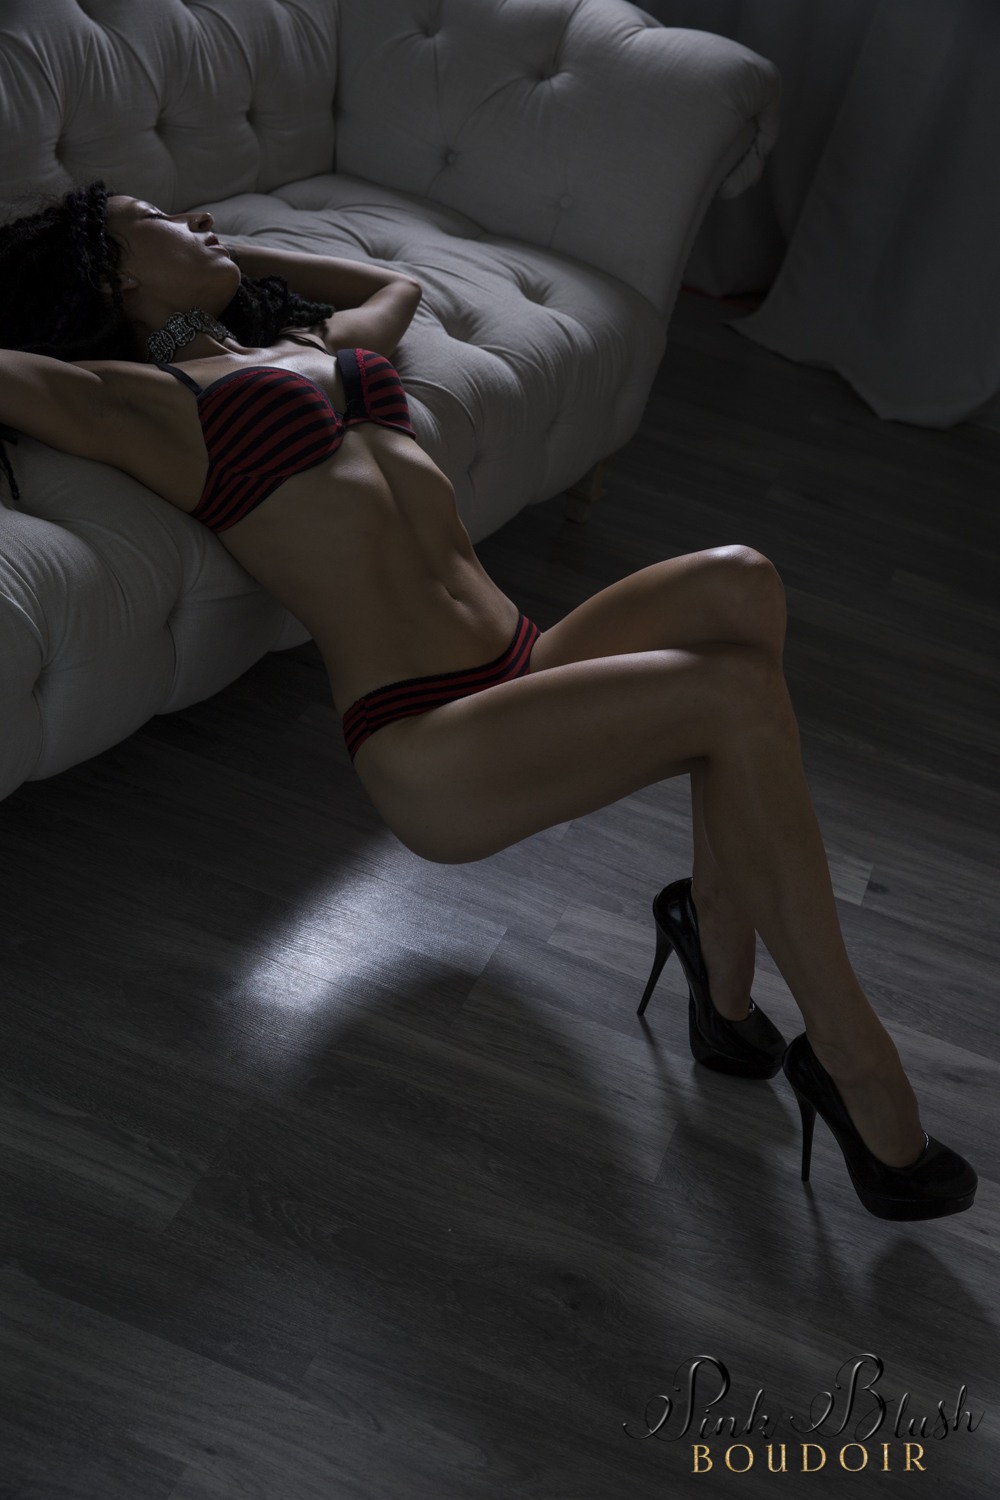 Boudoir Photography Edmonton, woman arched over a couch in a black and red bra and panty set